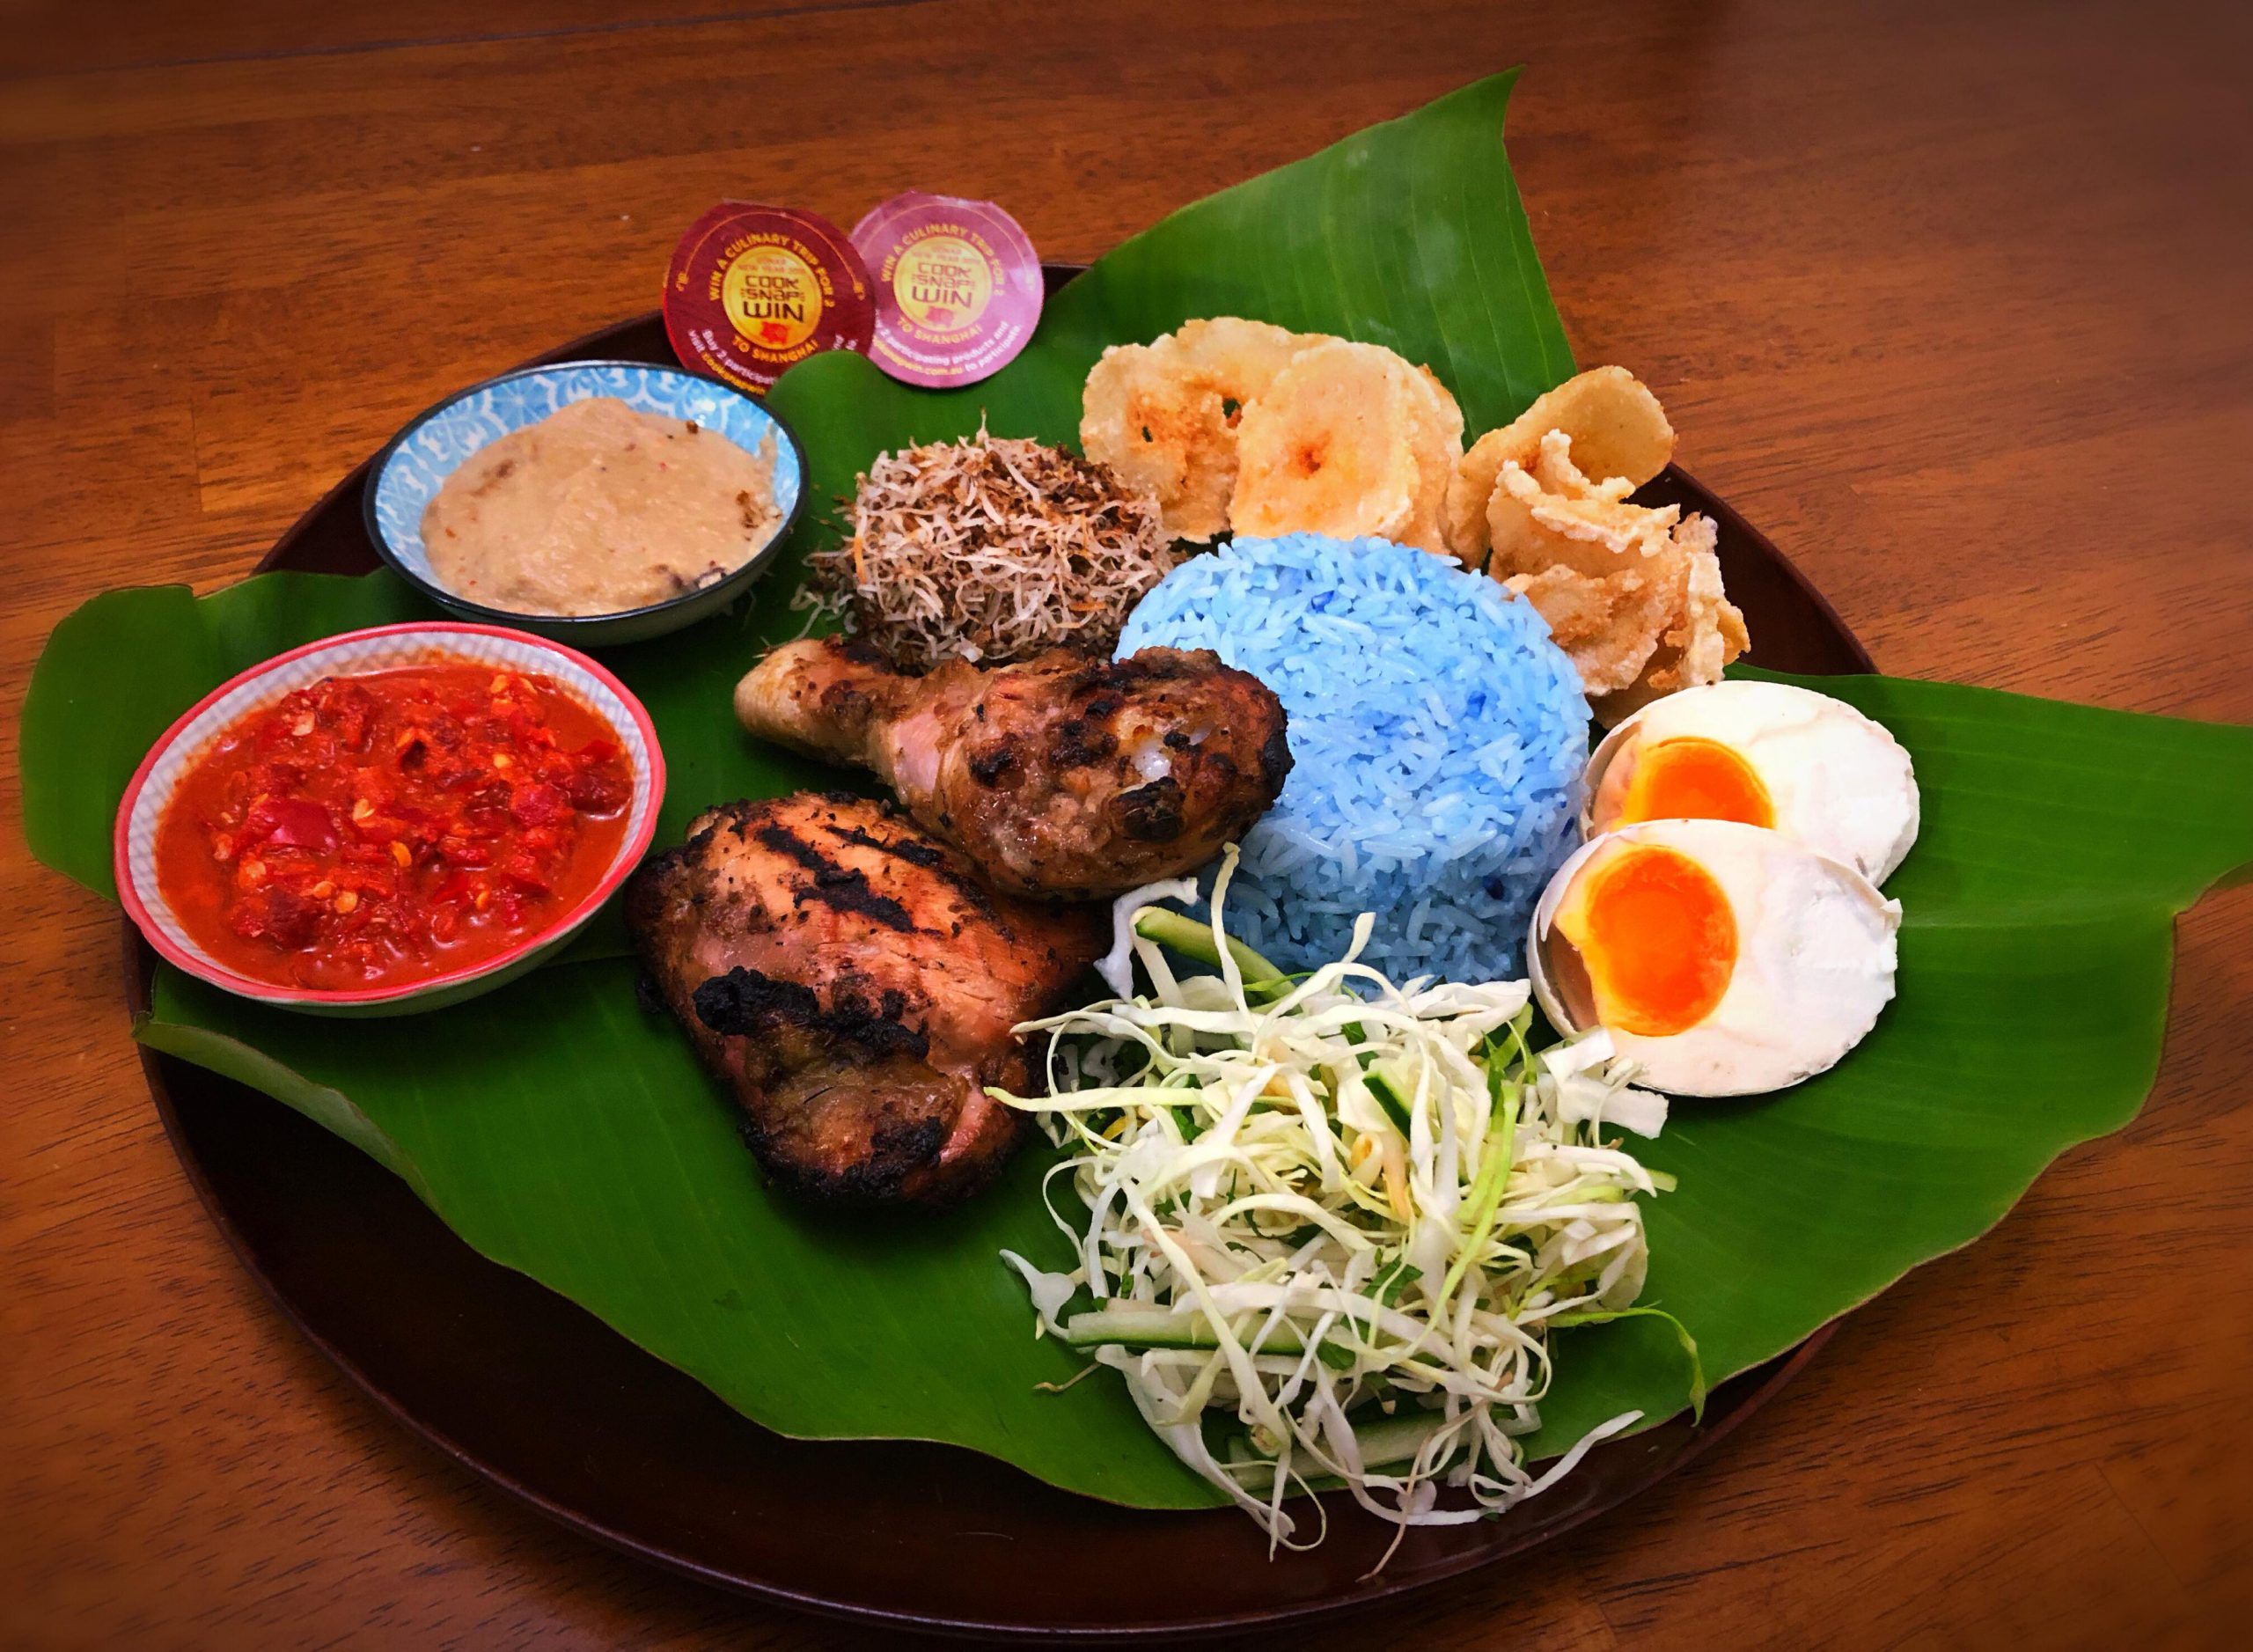 Ayam Percik (BBQ Spiced Chicken) & Nasi Kerabu (Herb Rice Salad)